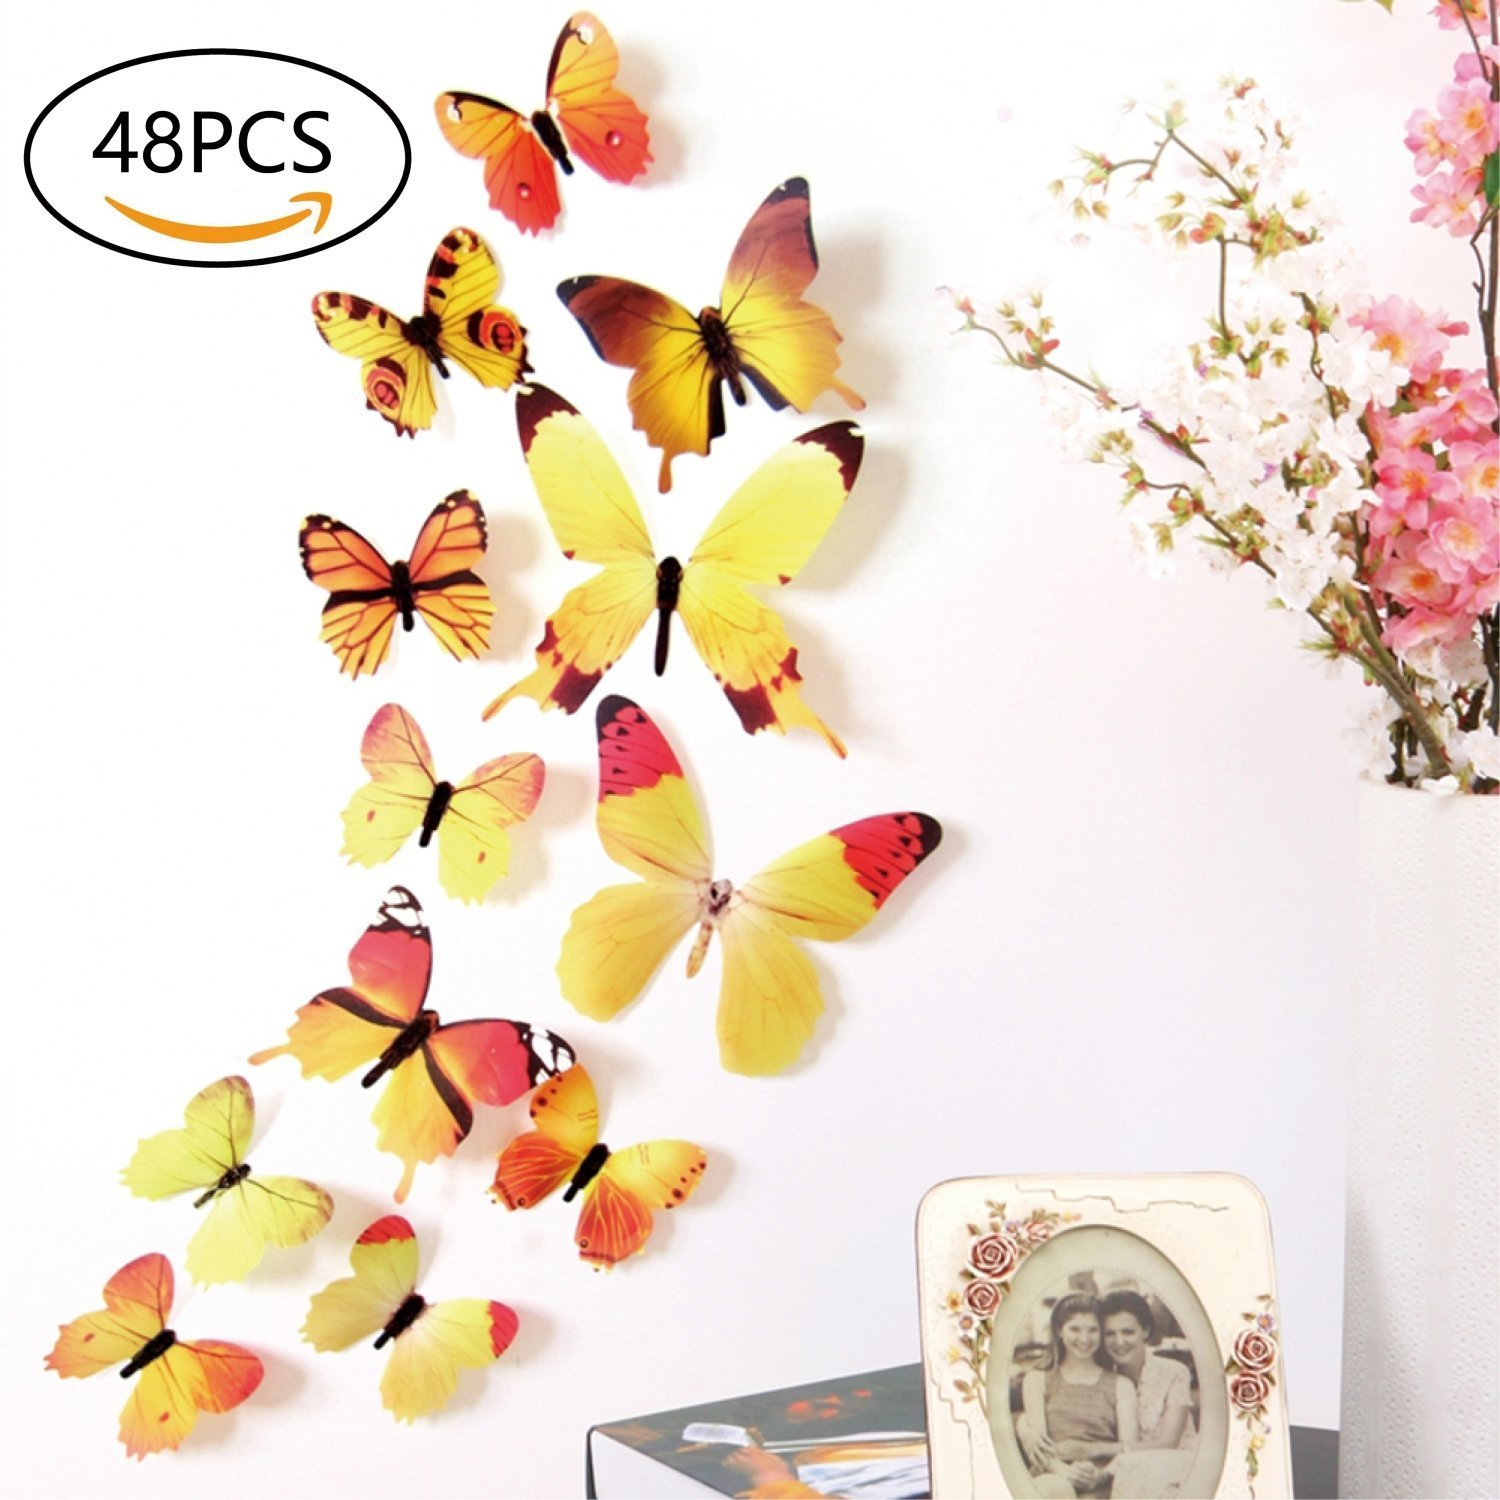 Amazon.com: 48 PCS Removable 3D Butterfly Wall Stickers Decals DIY ...